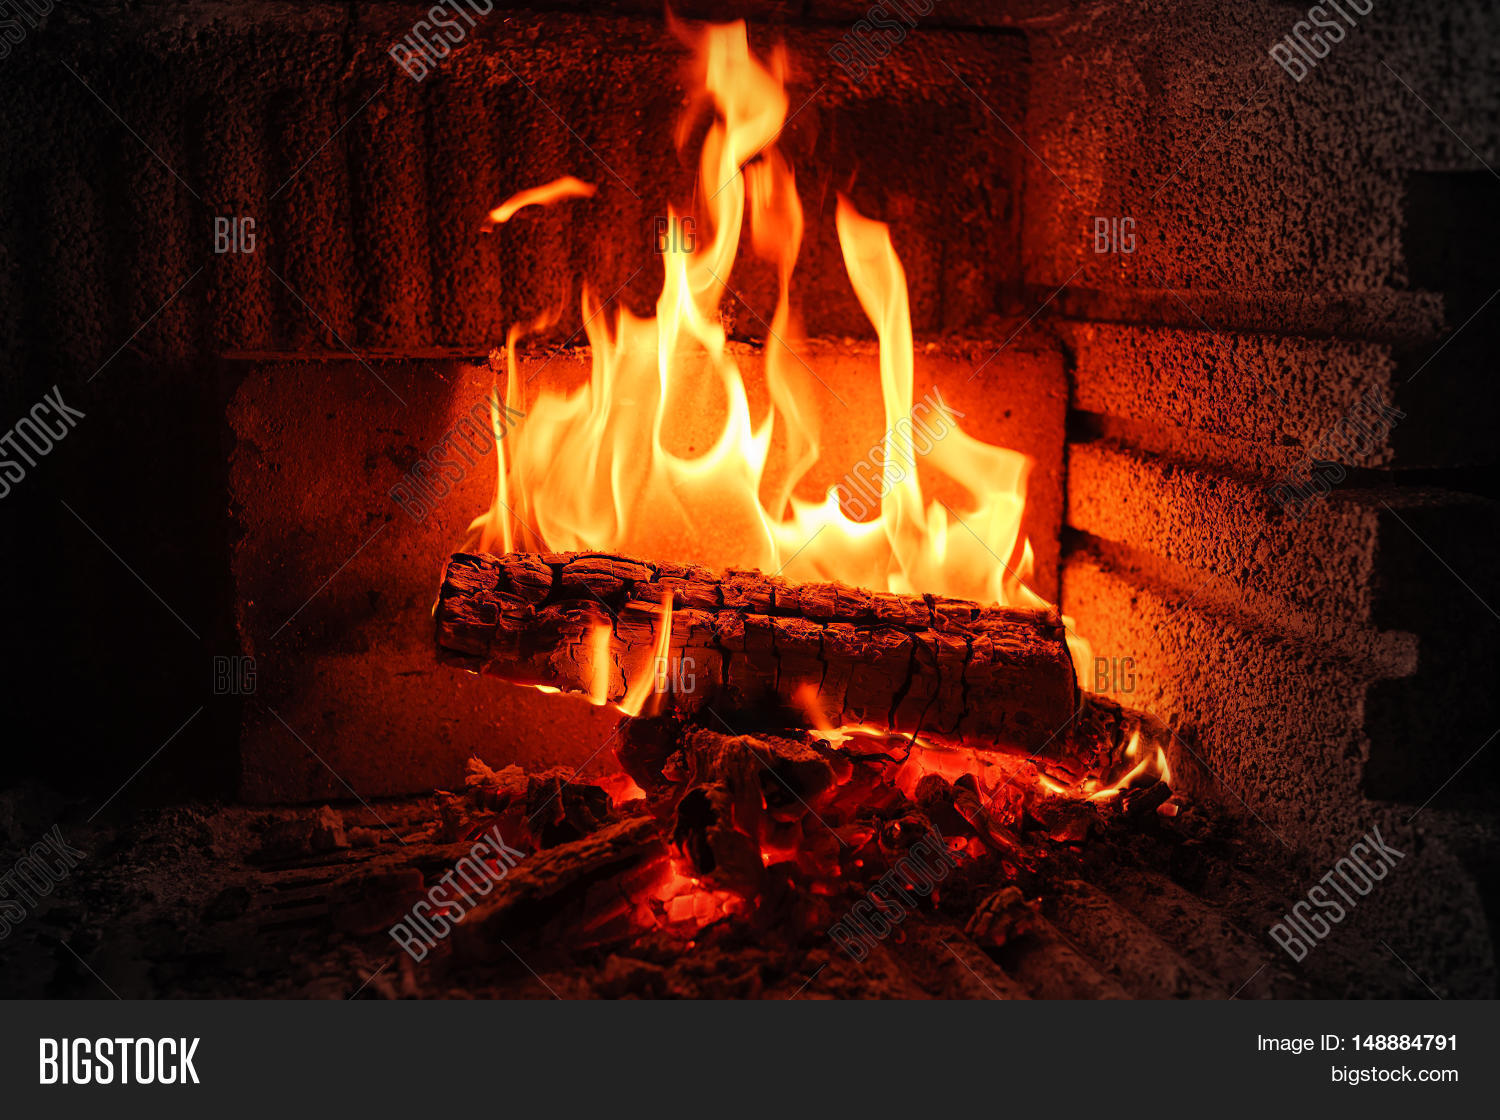 burning fireplace burning wood image u0026 photo bigstock